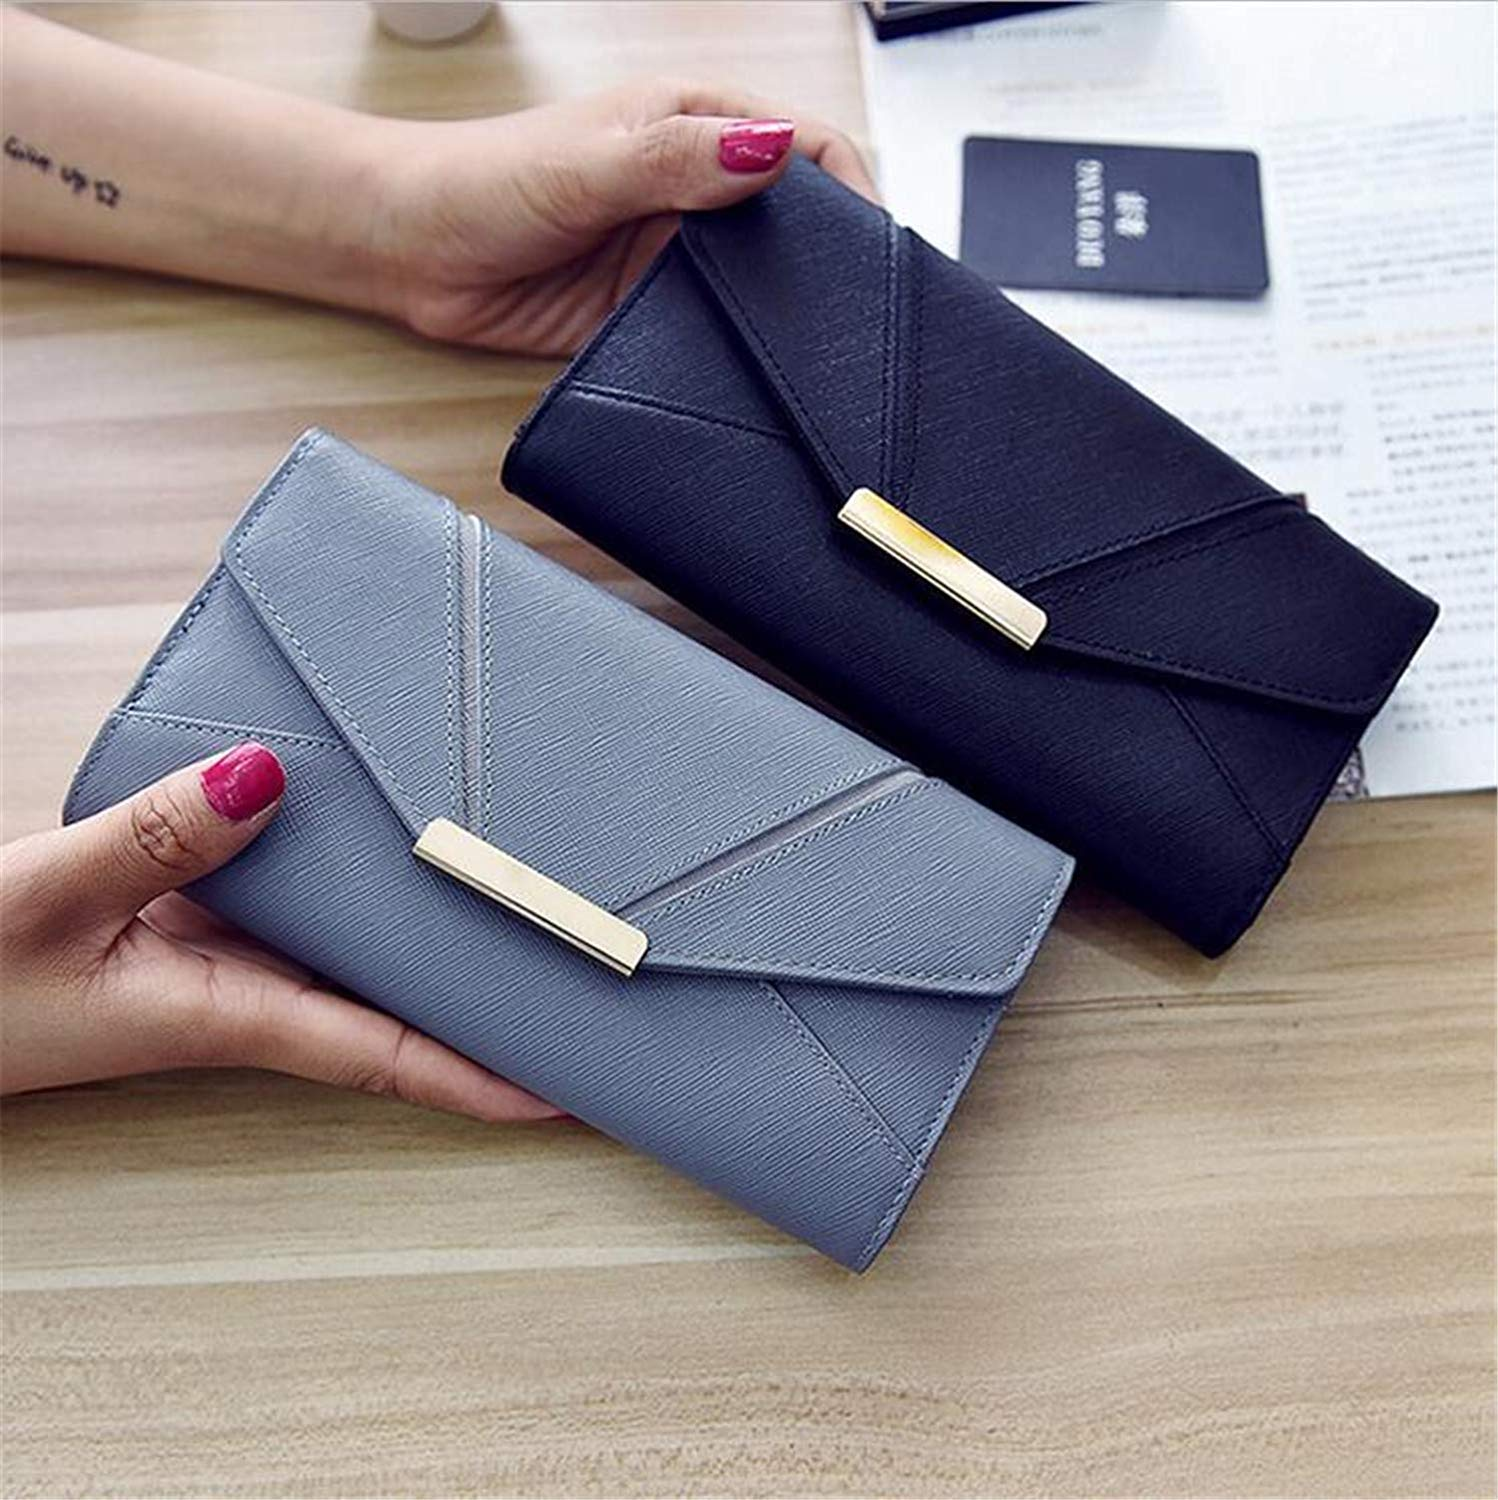 Couple Soft Women's PU Wallet Long Section Splicing Trifold Wallet Card Package Fashion Leisure Travel Shopping Elegant Large Capacity 9 Card Slots Purse Handbag (color   Couple)